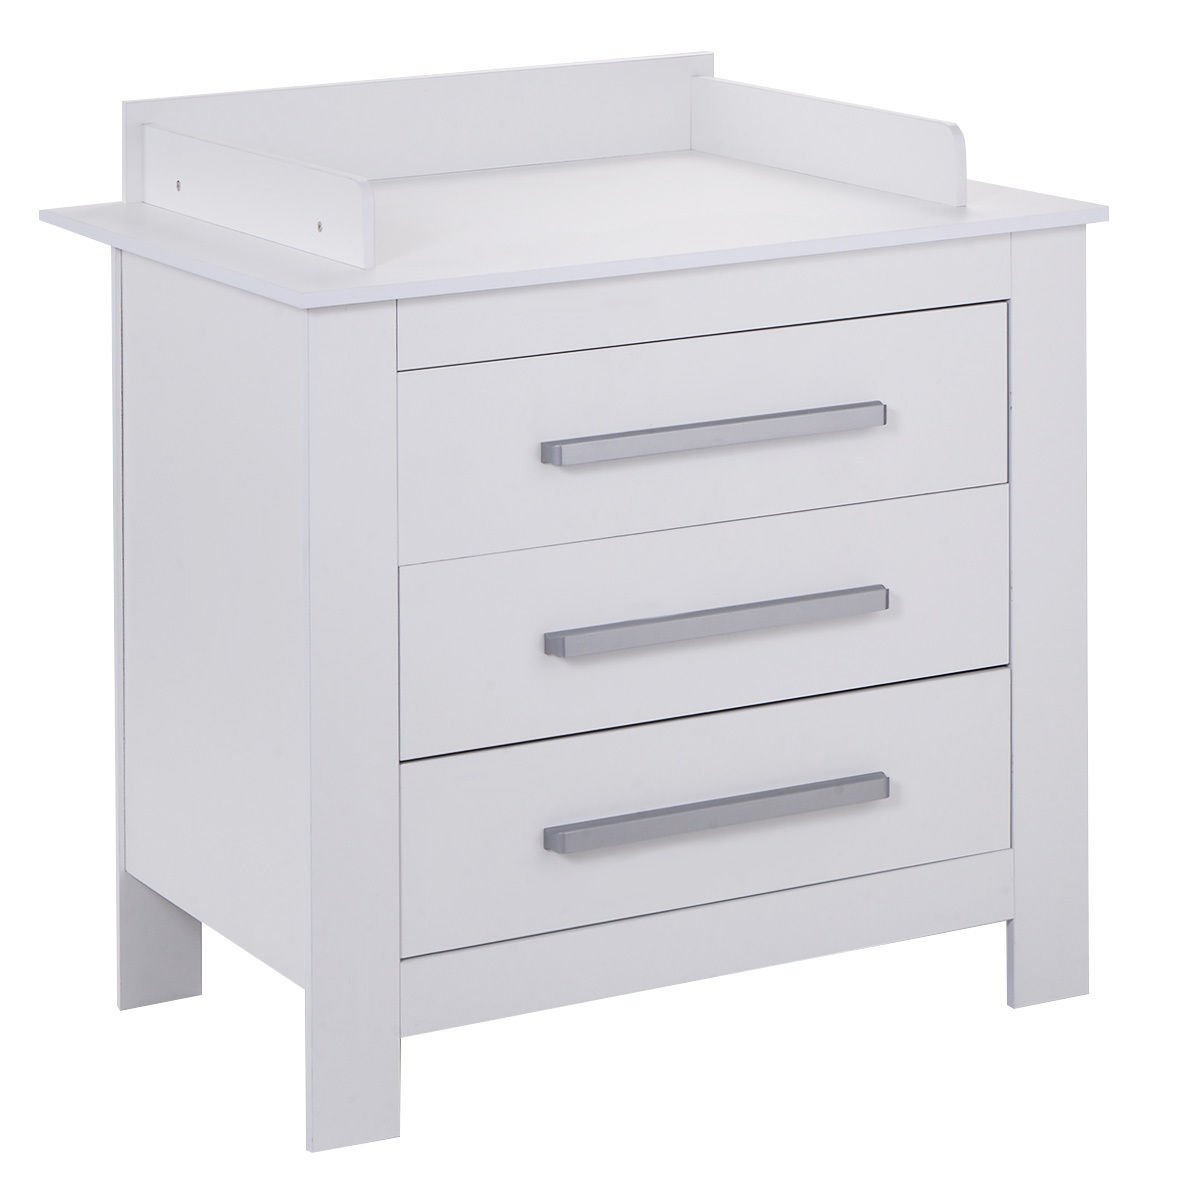 Costzon White Changing Table Dresser Baby Room Nursery Furniture Diaper Station 3 Drawer